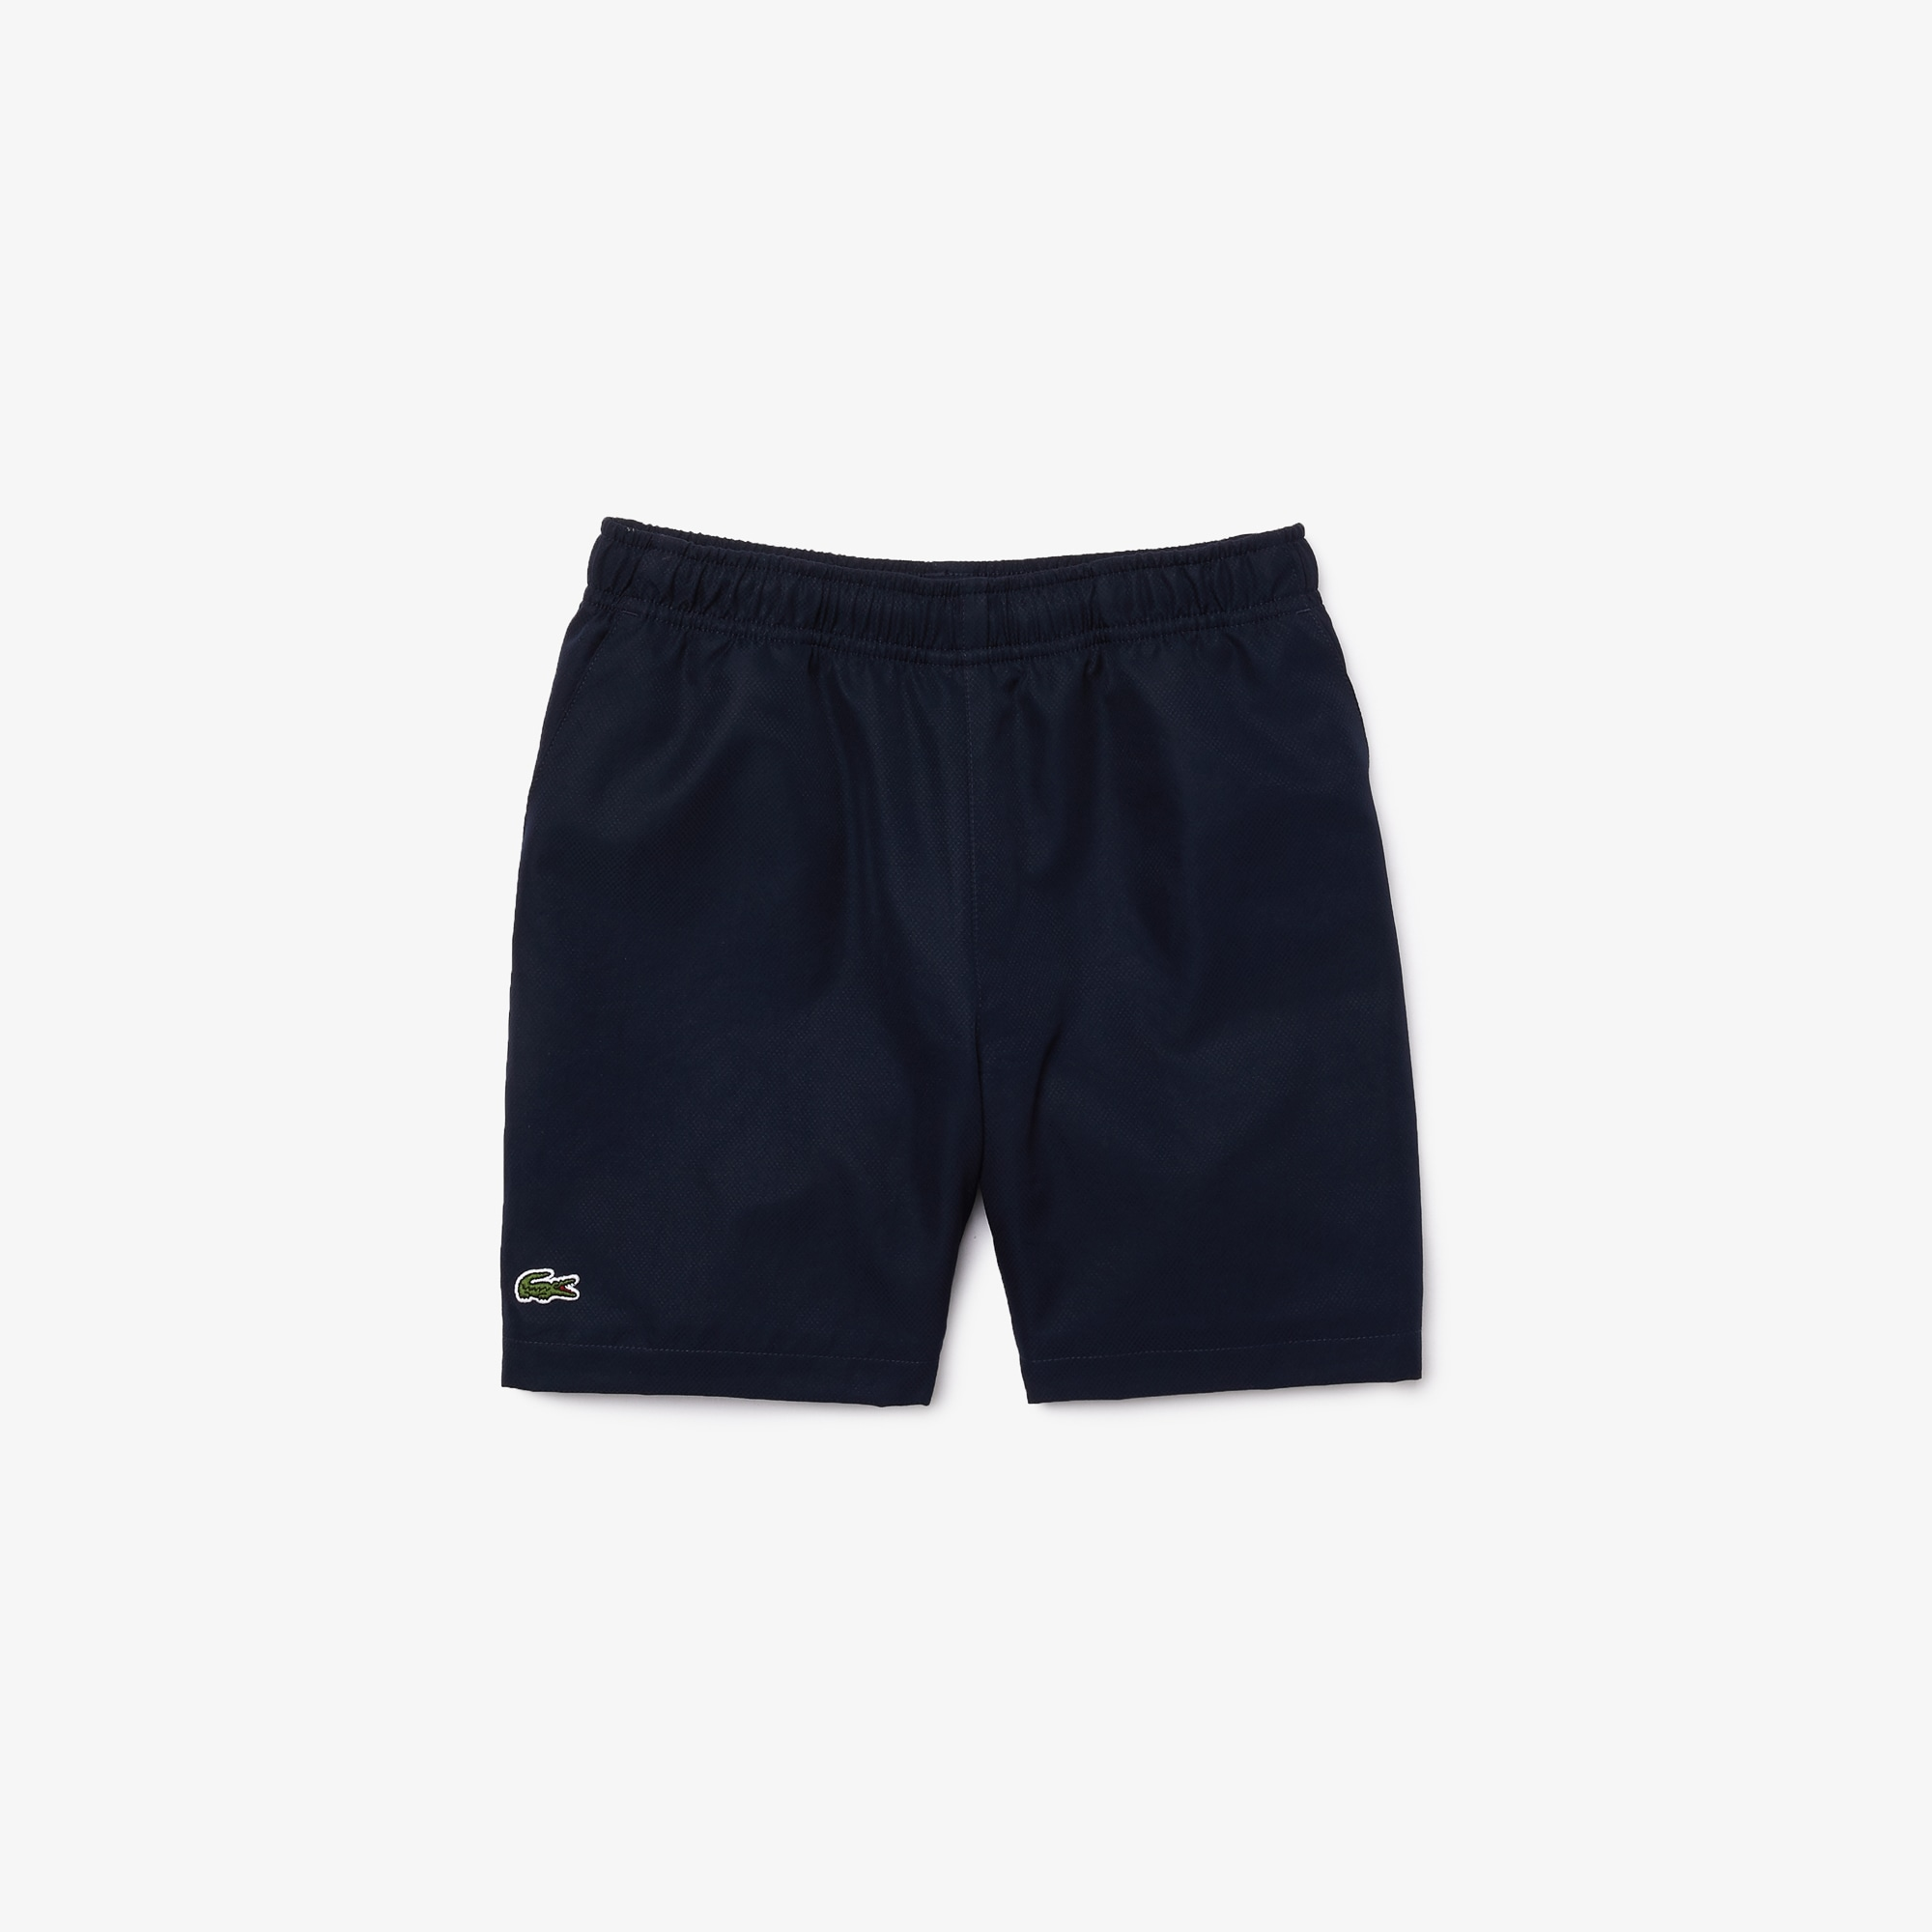 Boys' Lacoste SPORT Tennis Shorts